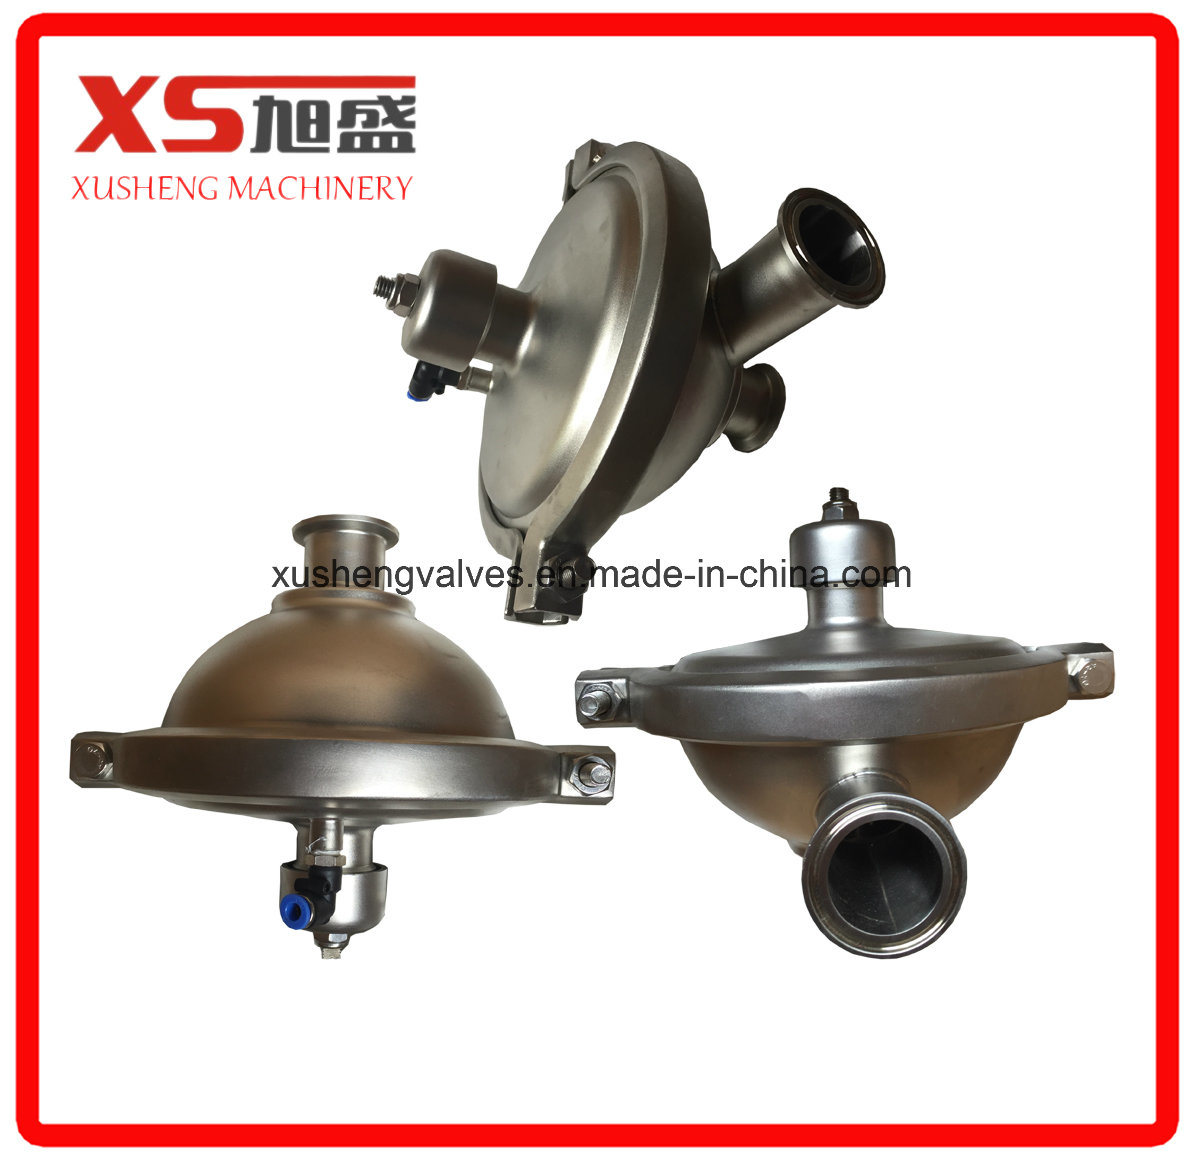 Stainless Steel Sanitary Grade Pressure Regulating Valve